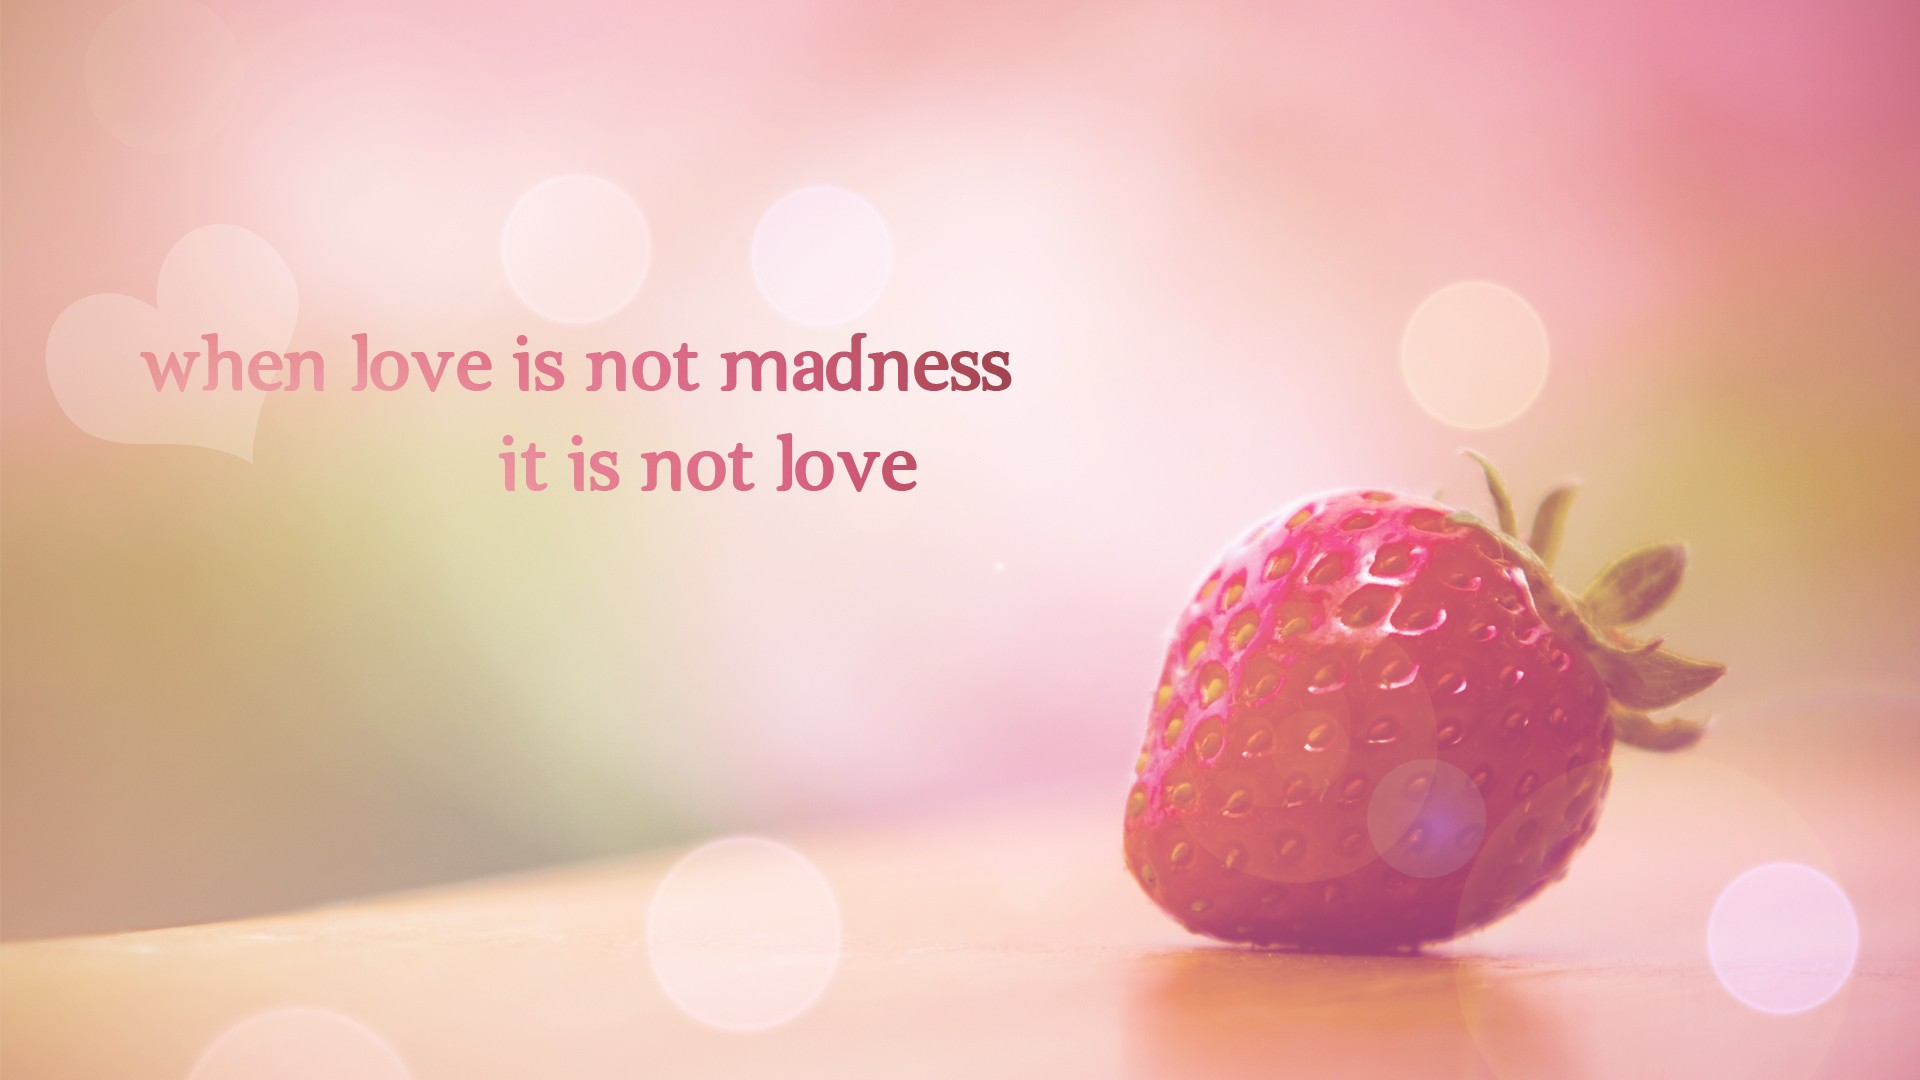 Free Download Love Quotes Wallpaper Wallpaper High Definition High 1920x1080 For Your Desktop Mobile Tablet Explore 78 Love Quotes Backgrounds Love Quotes Wallpapers For Desktop Wallpaper About Love Wallpaper